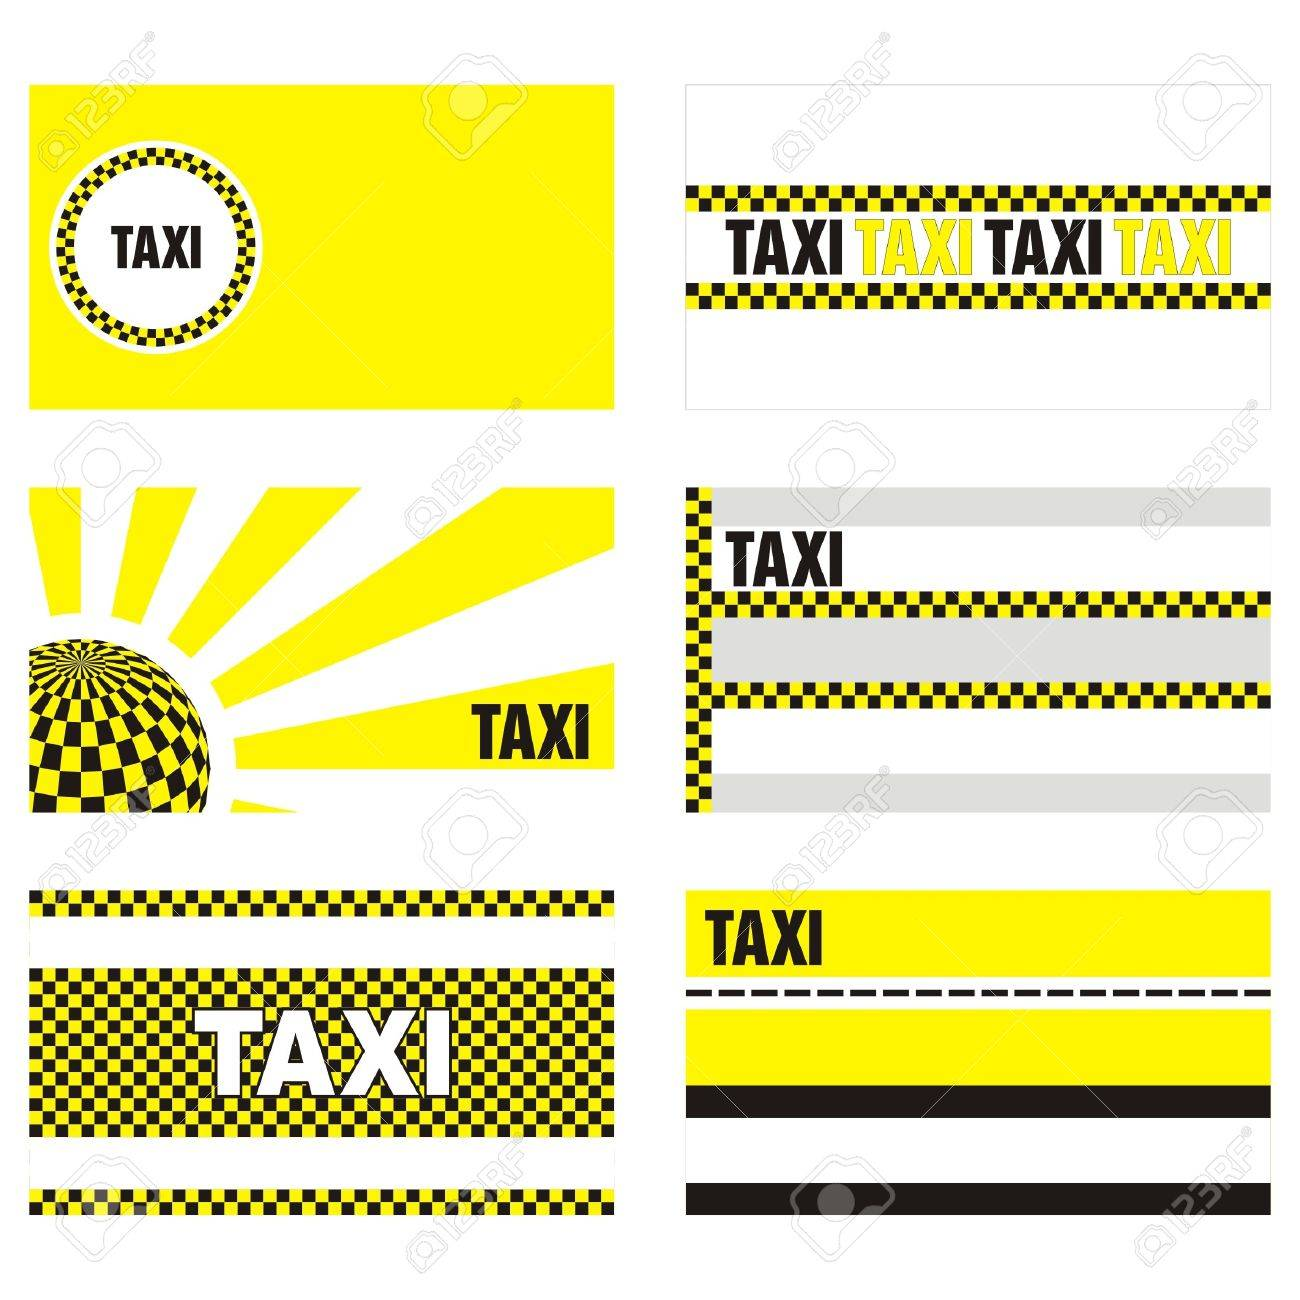 Taxi business cards 90 x 50 mm royalty free cliparts vectors and taxi business cards 90 x 50 mm stock vector 9862111 reheart Choice Image